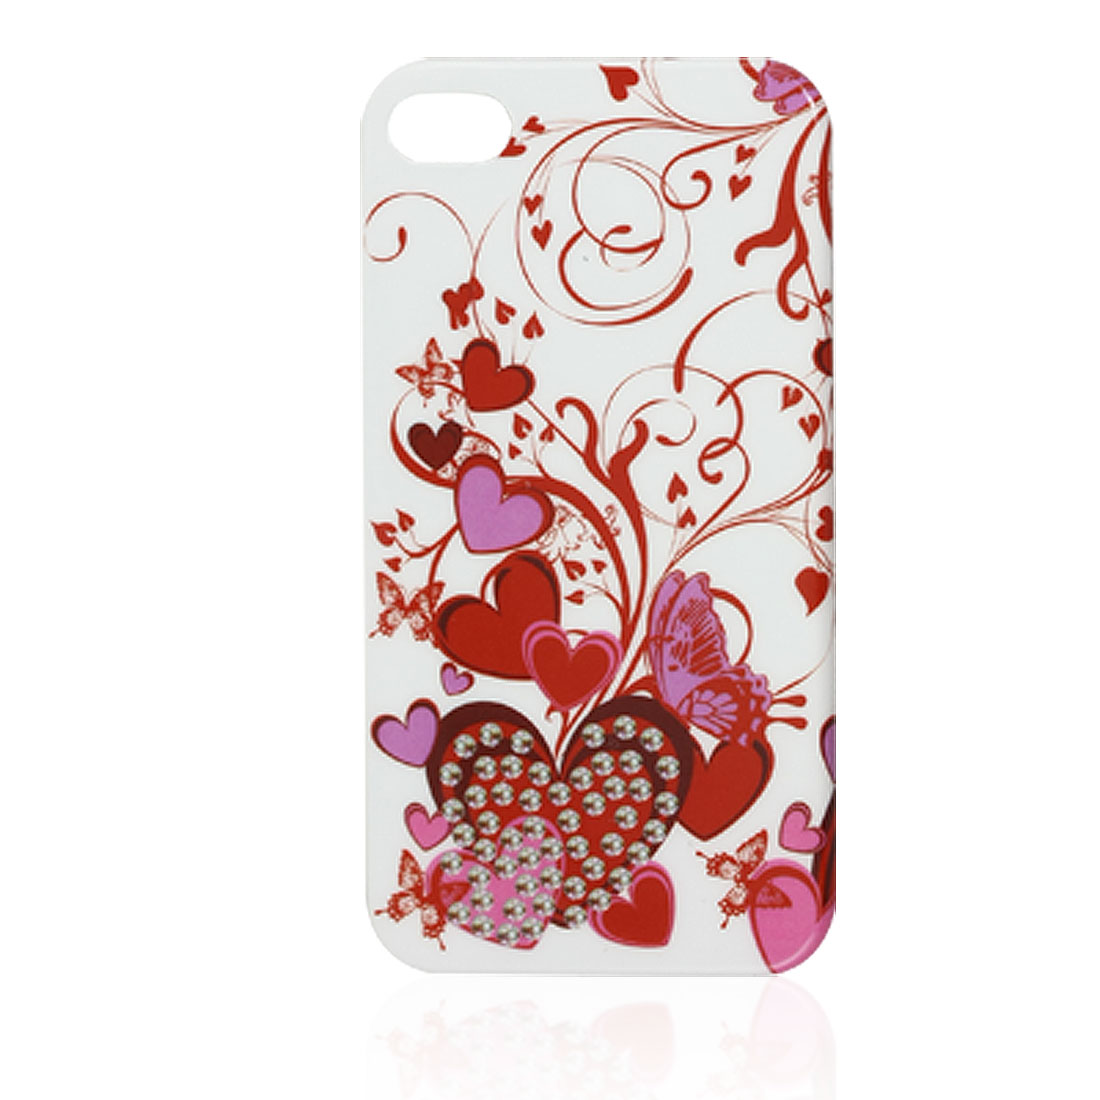 IMD Red Heart Pattern Plastic Back Cover Shell for iPhone 4 4G 4S